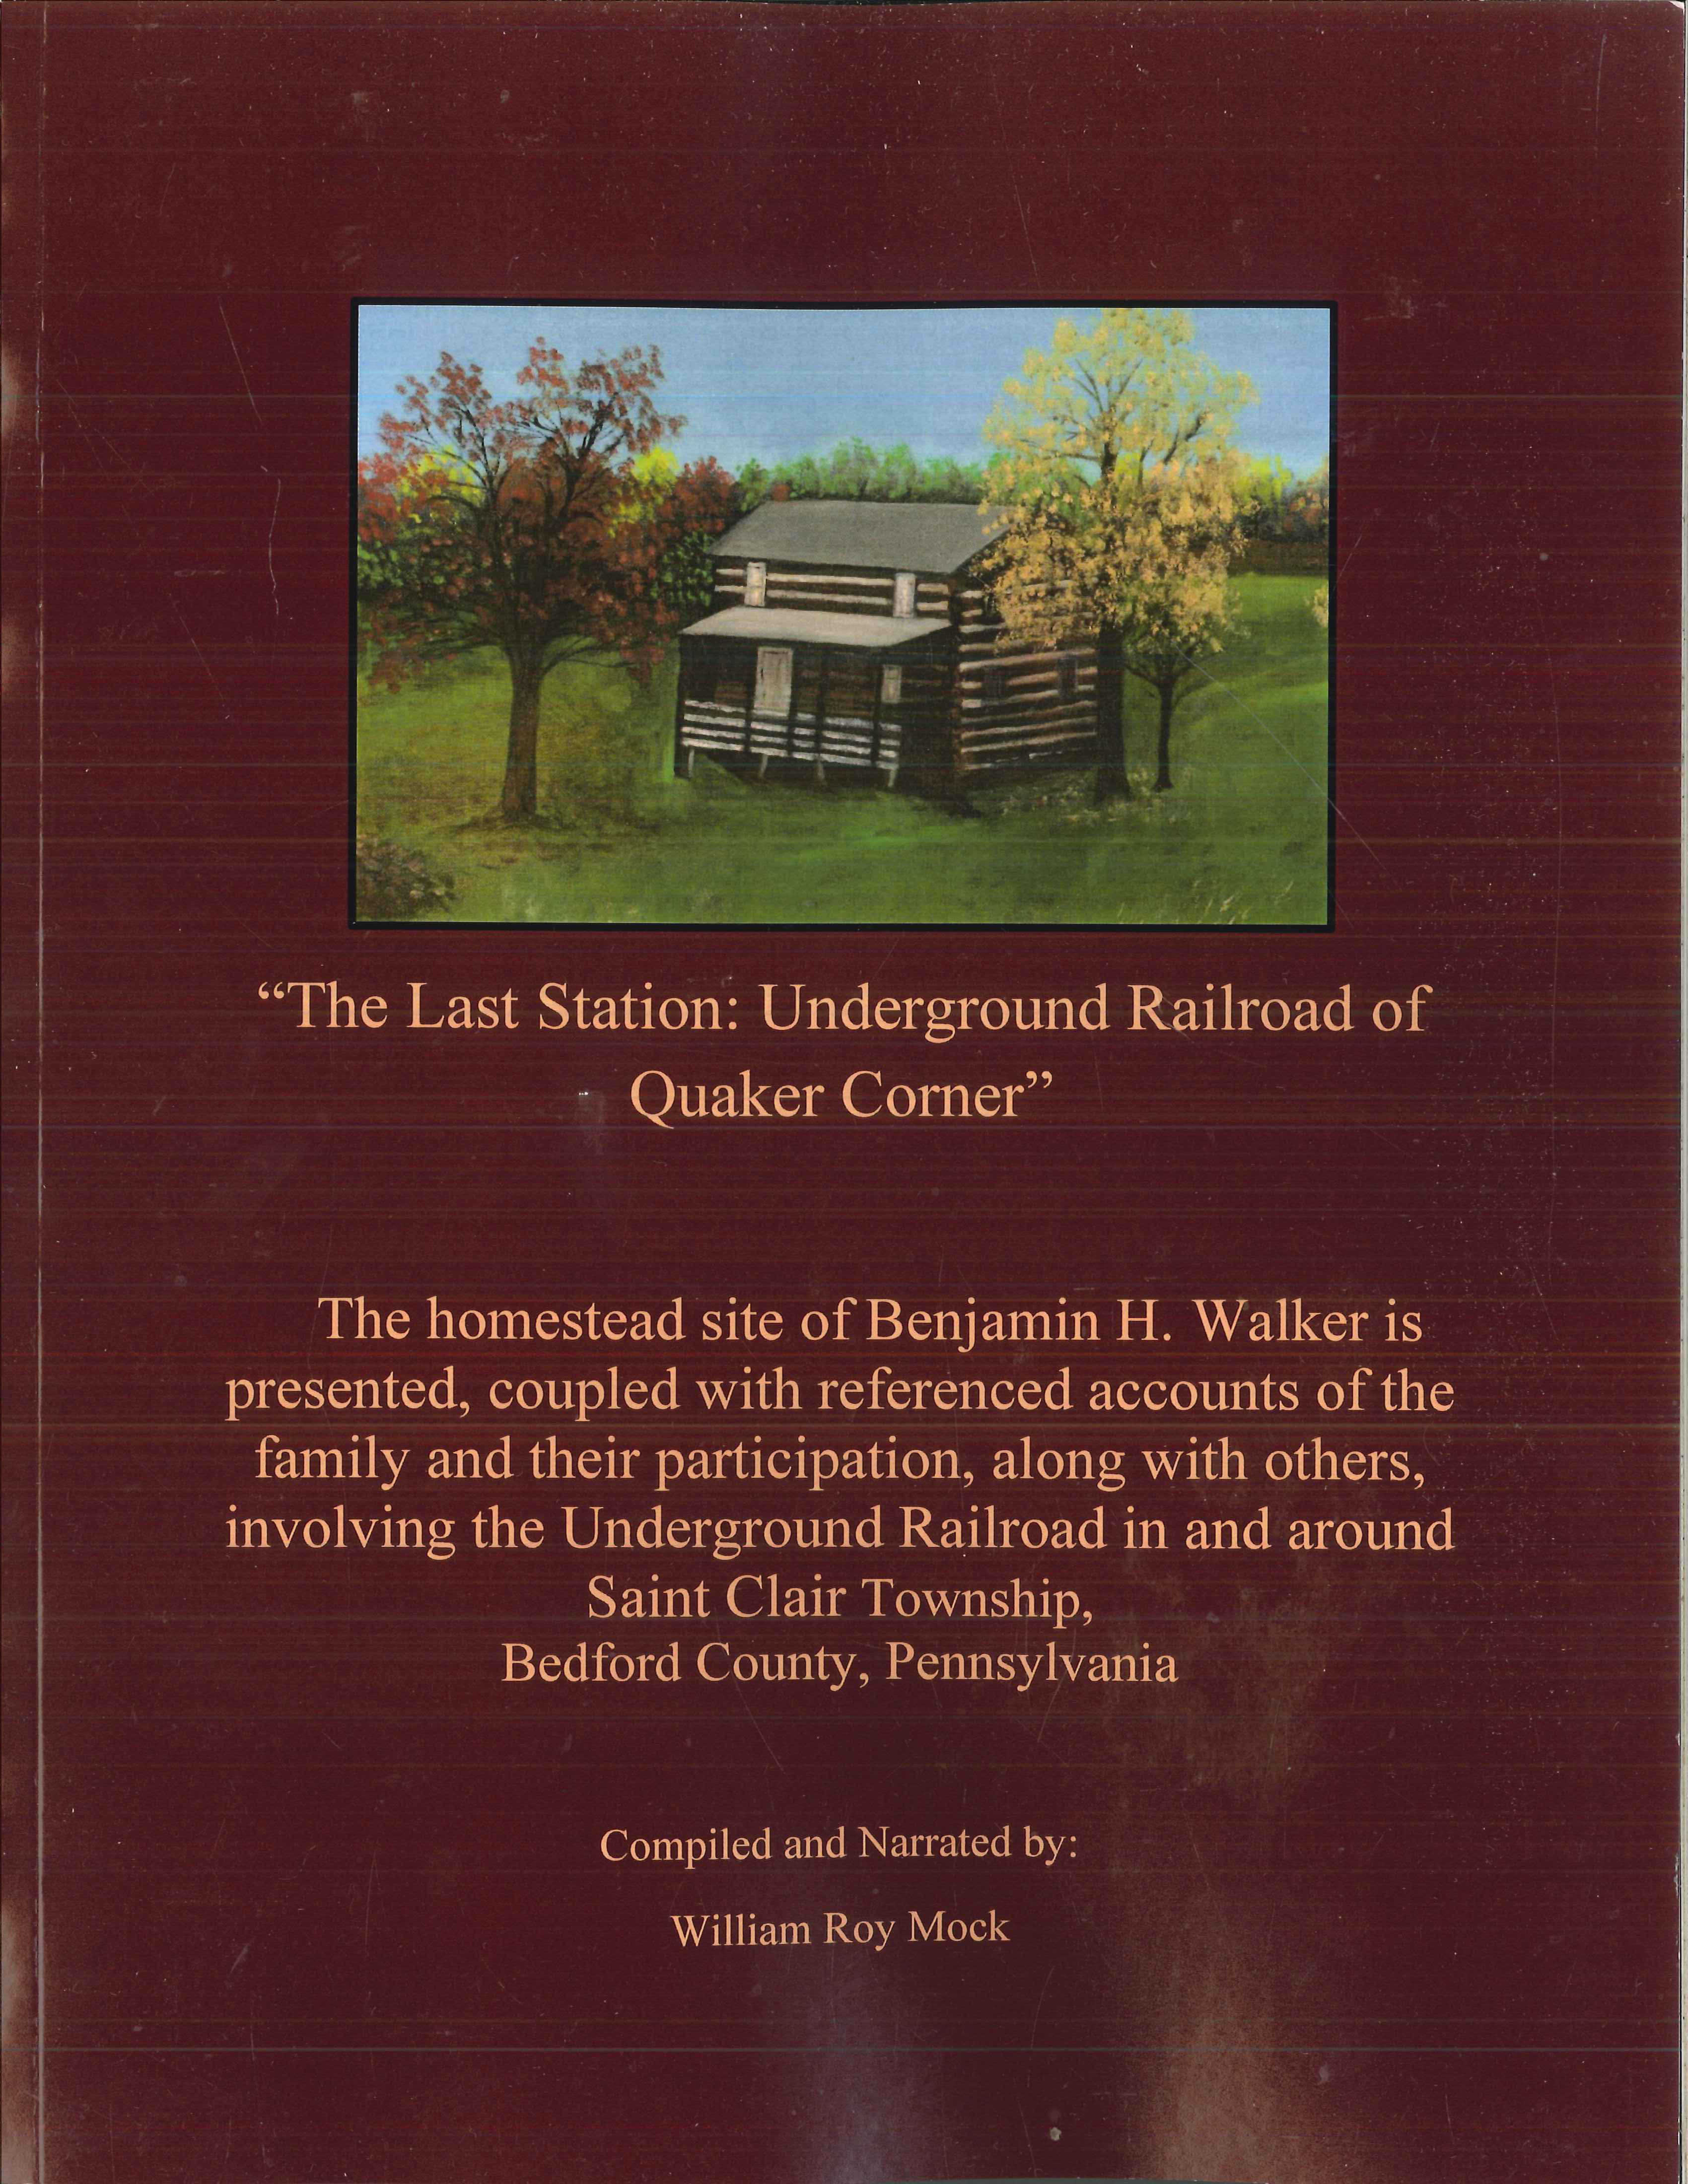 The Last Station: Underground Railroad of Quaker Corner by William Roy Mock